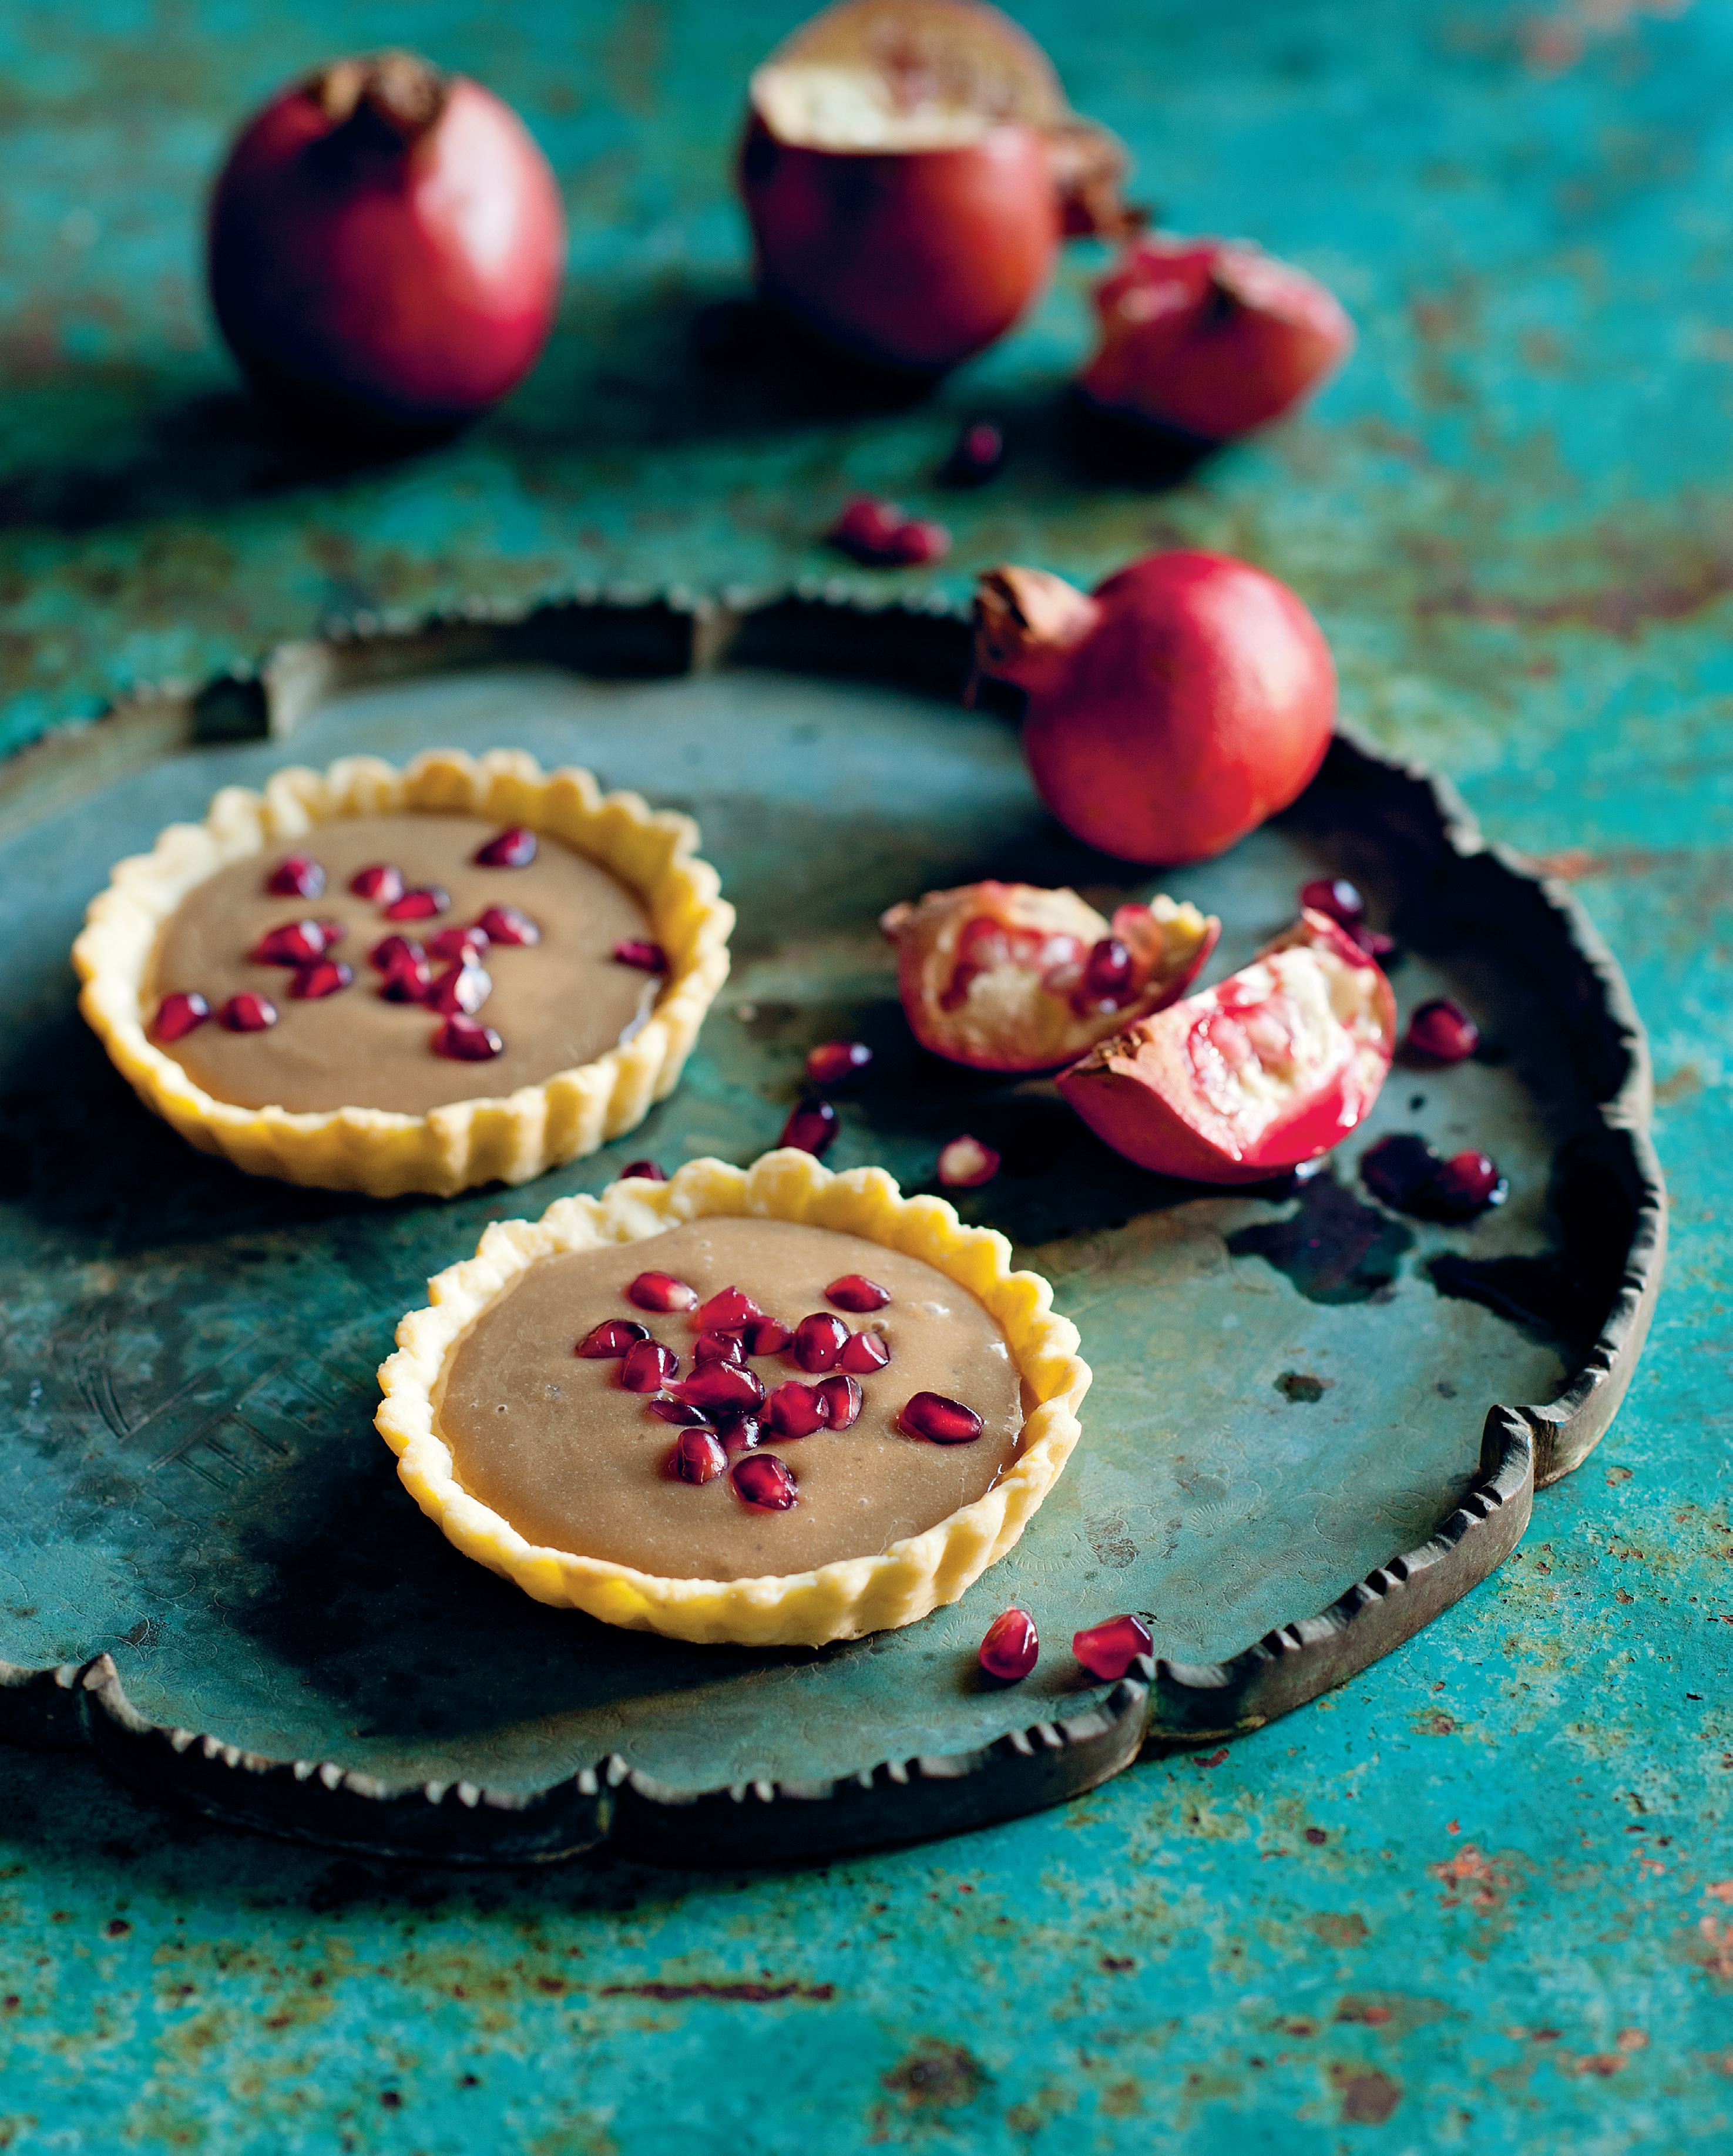 Vietnamese coffee tart with fresh pomegranate